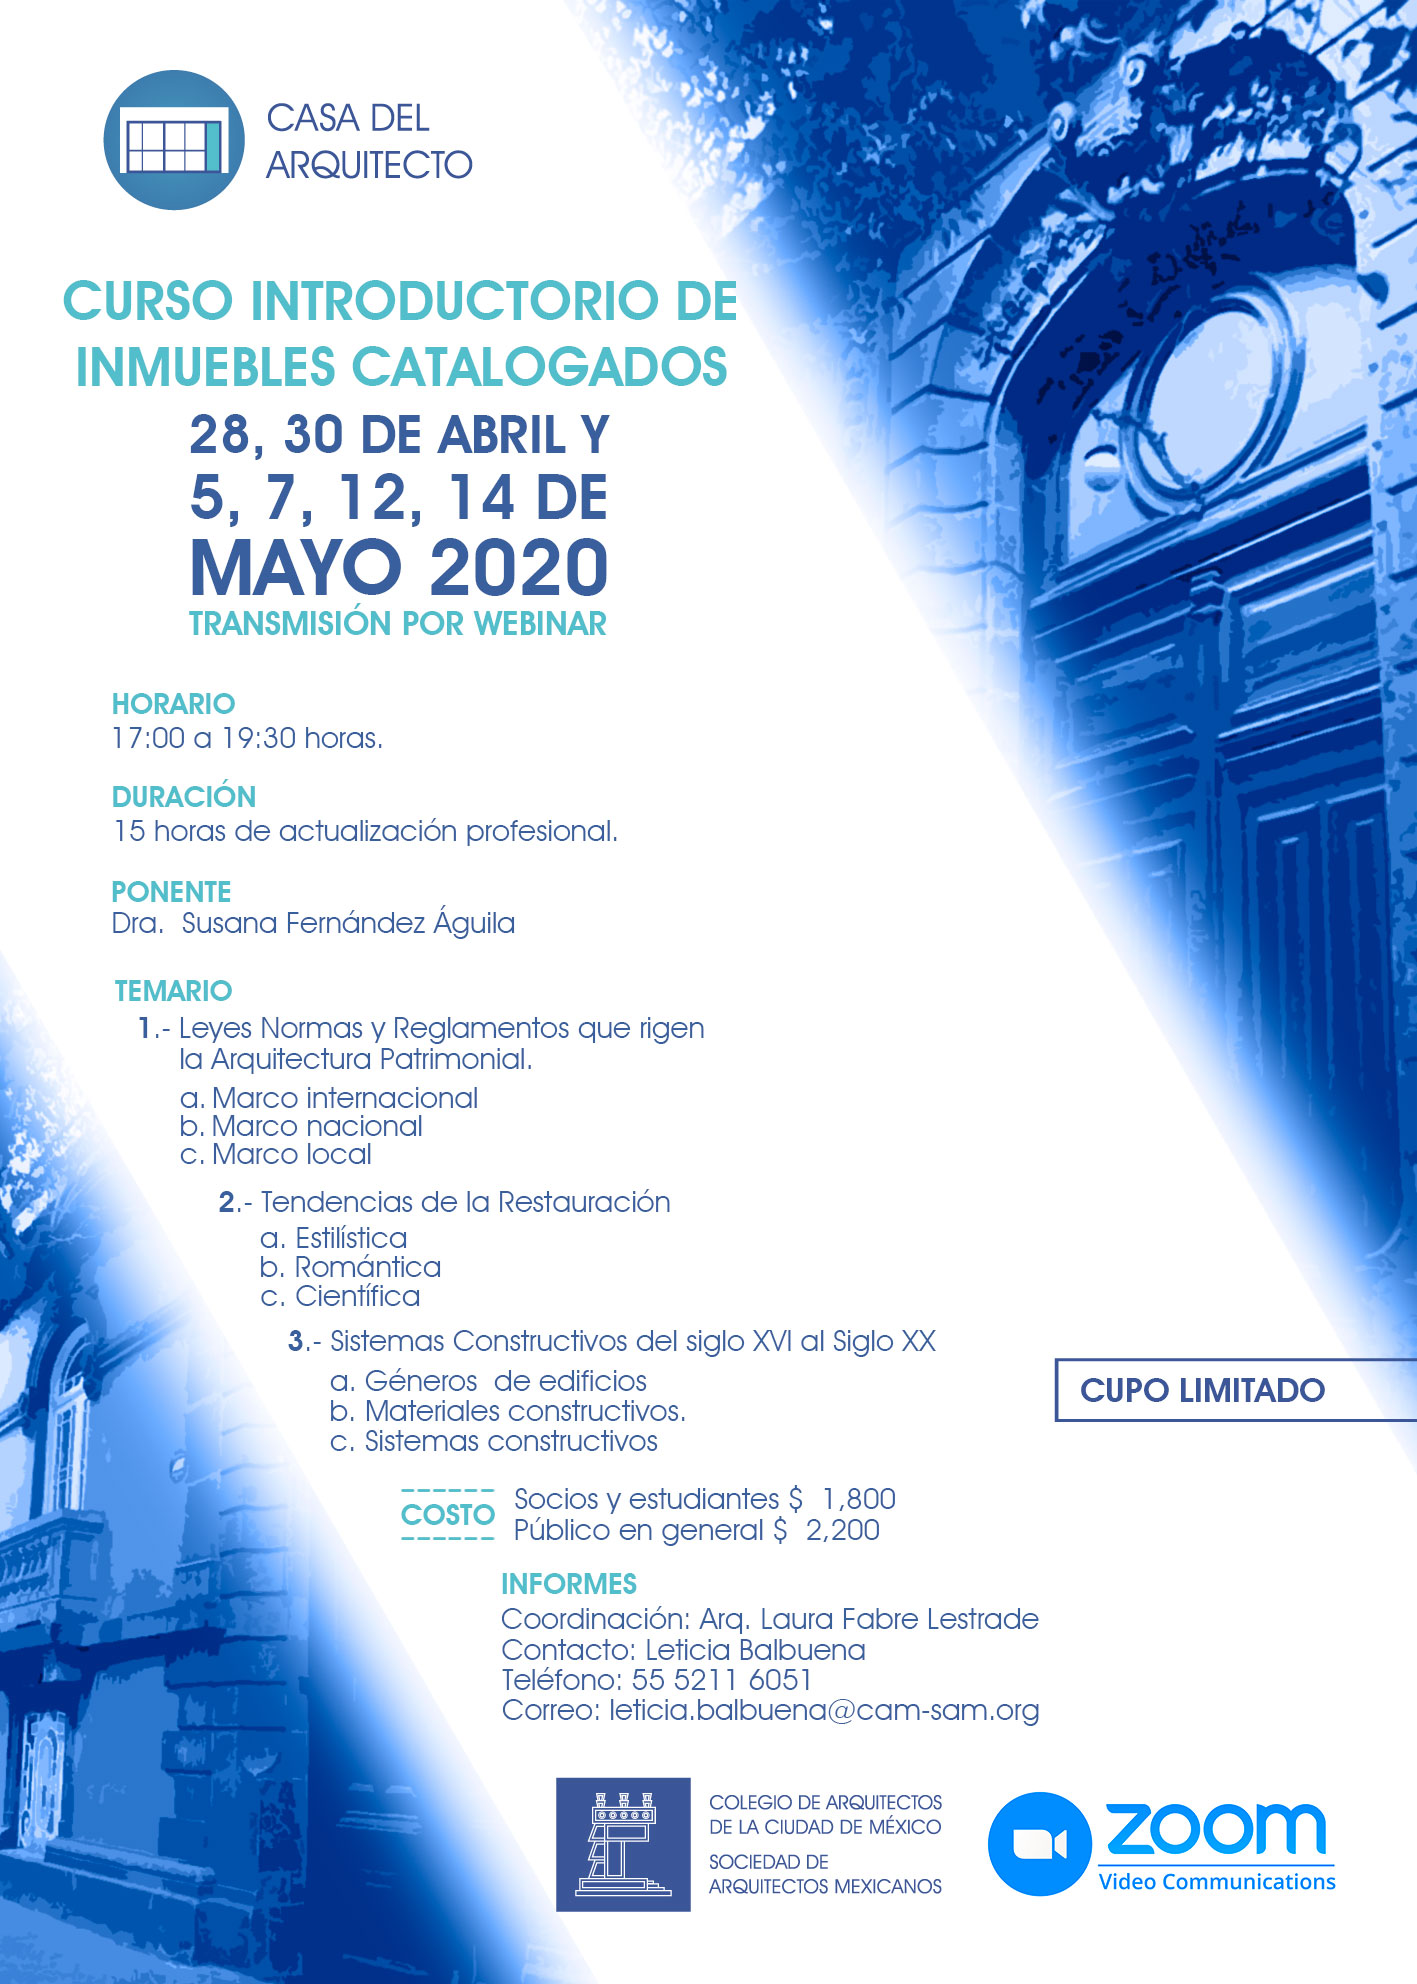 Curso Introductorio de Inmuebles Catalogados